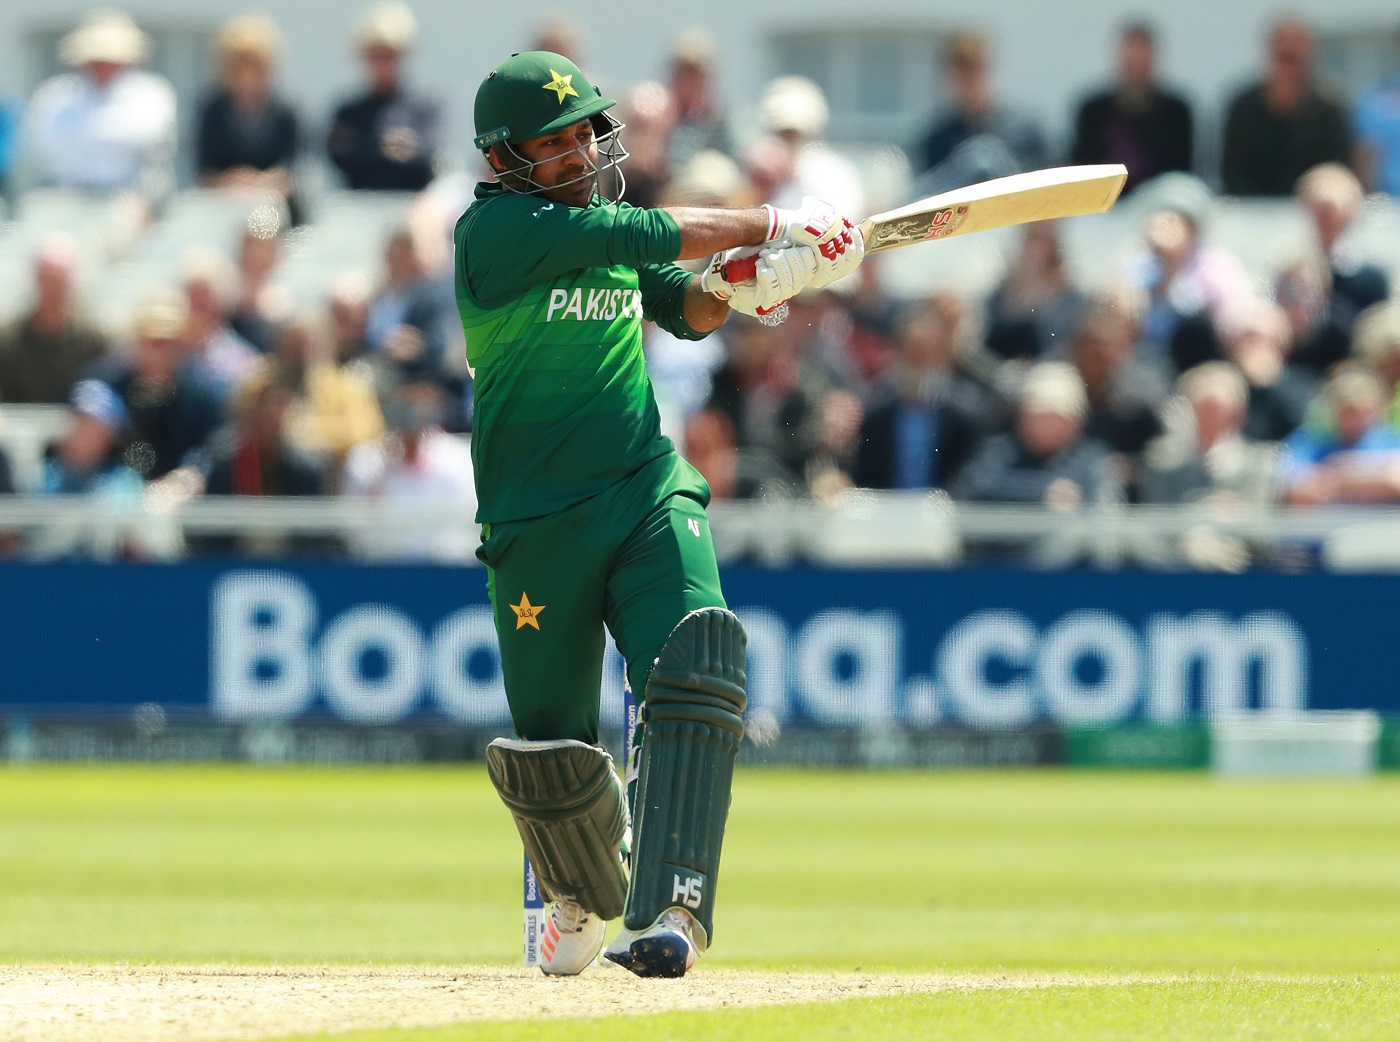 We are confident that we will qualify, says Babar Azam